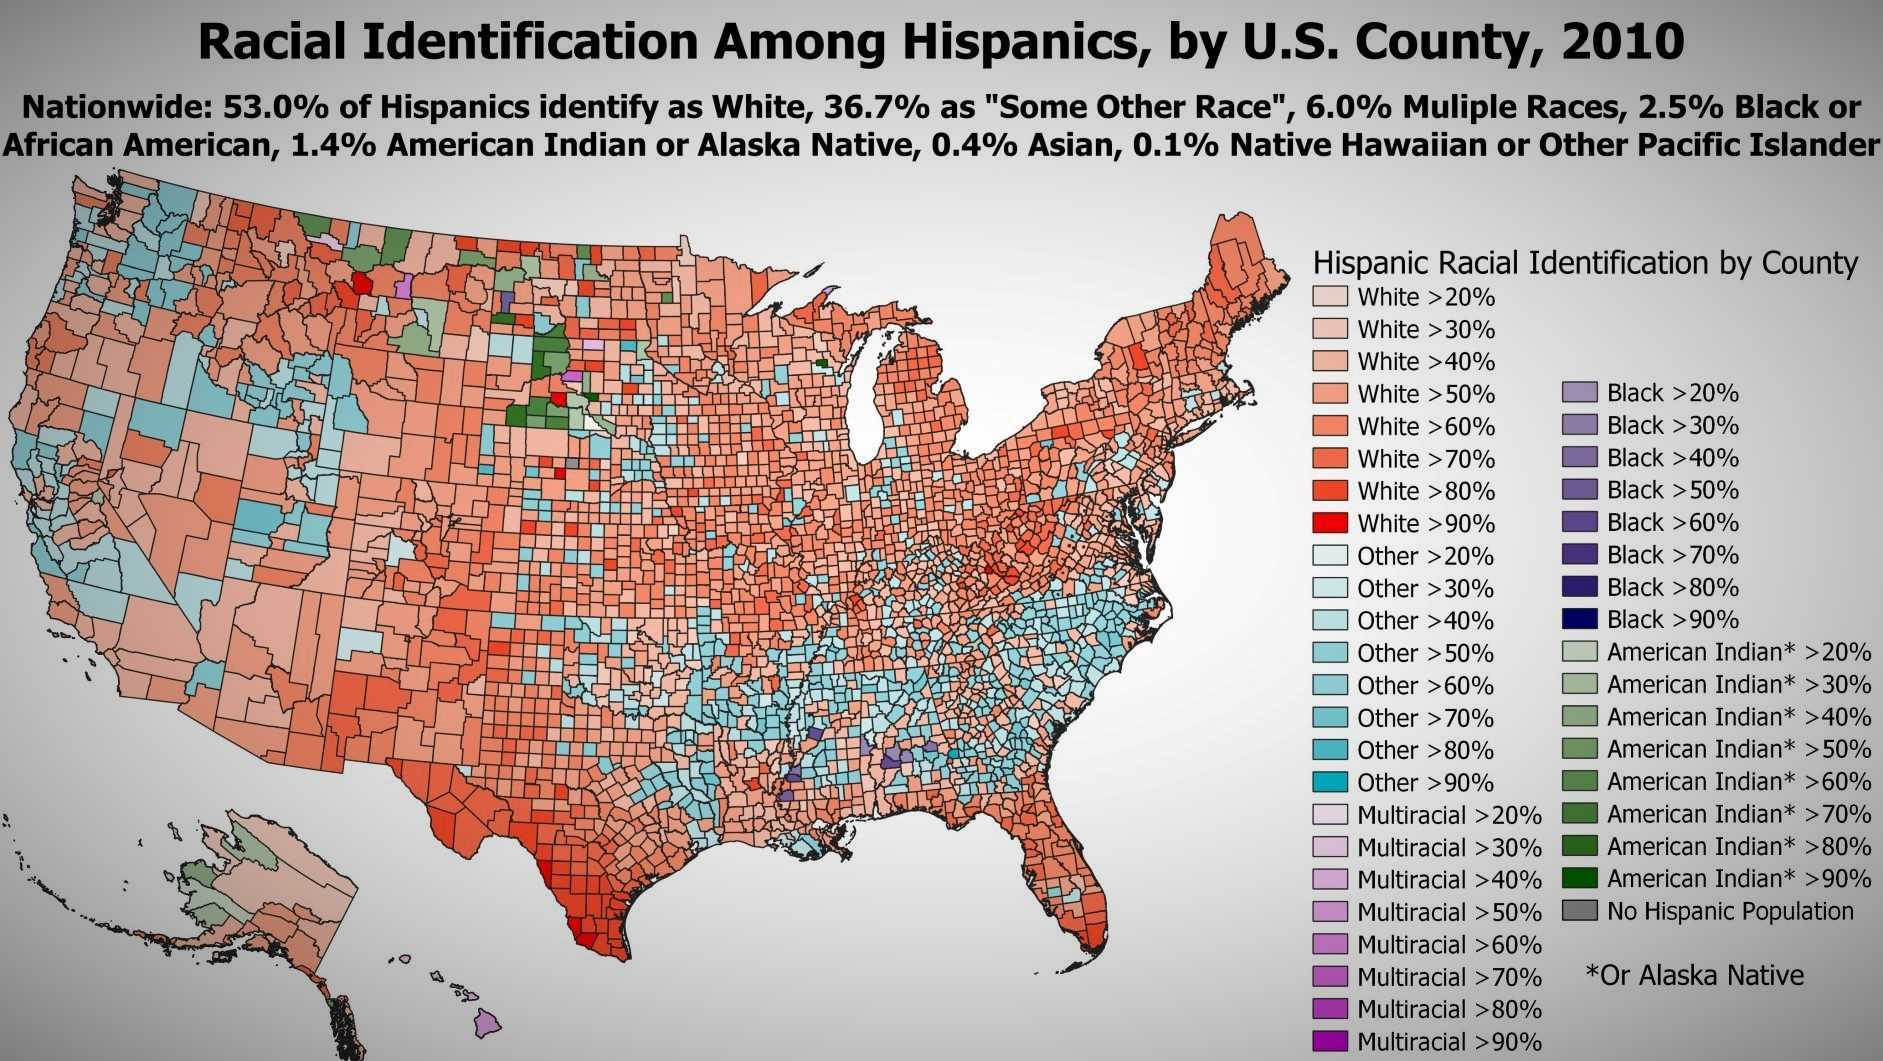 Racial Accounting and the Galvanization of Group Rights in the U.S. – Not a Liberal Solution